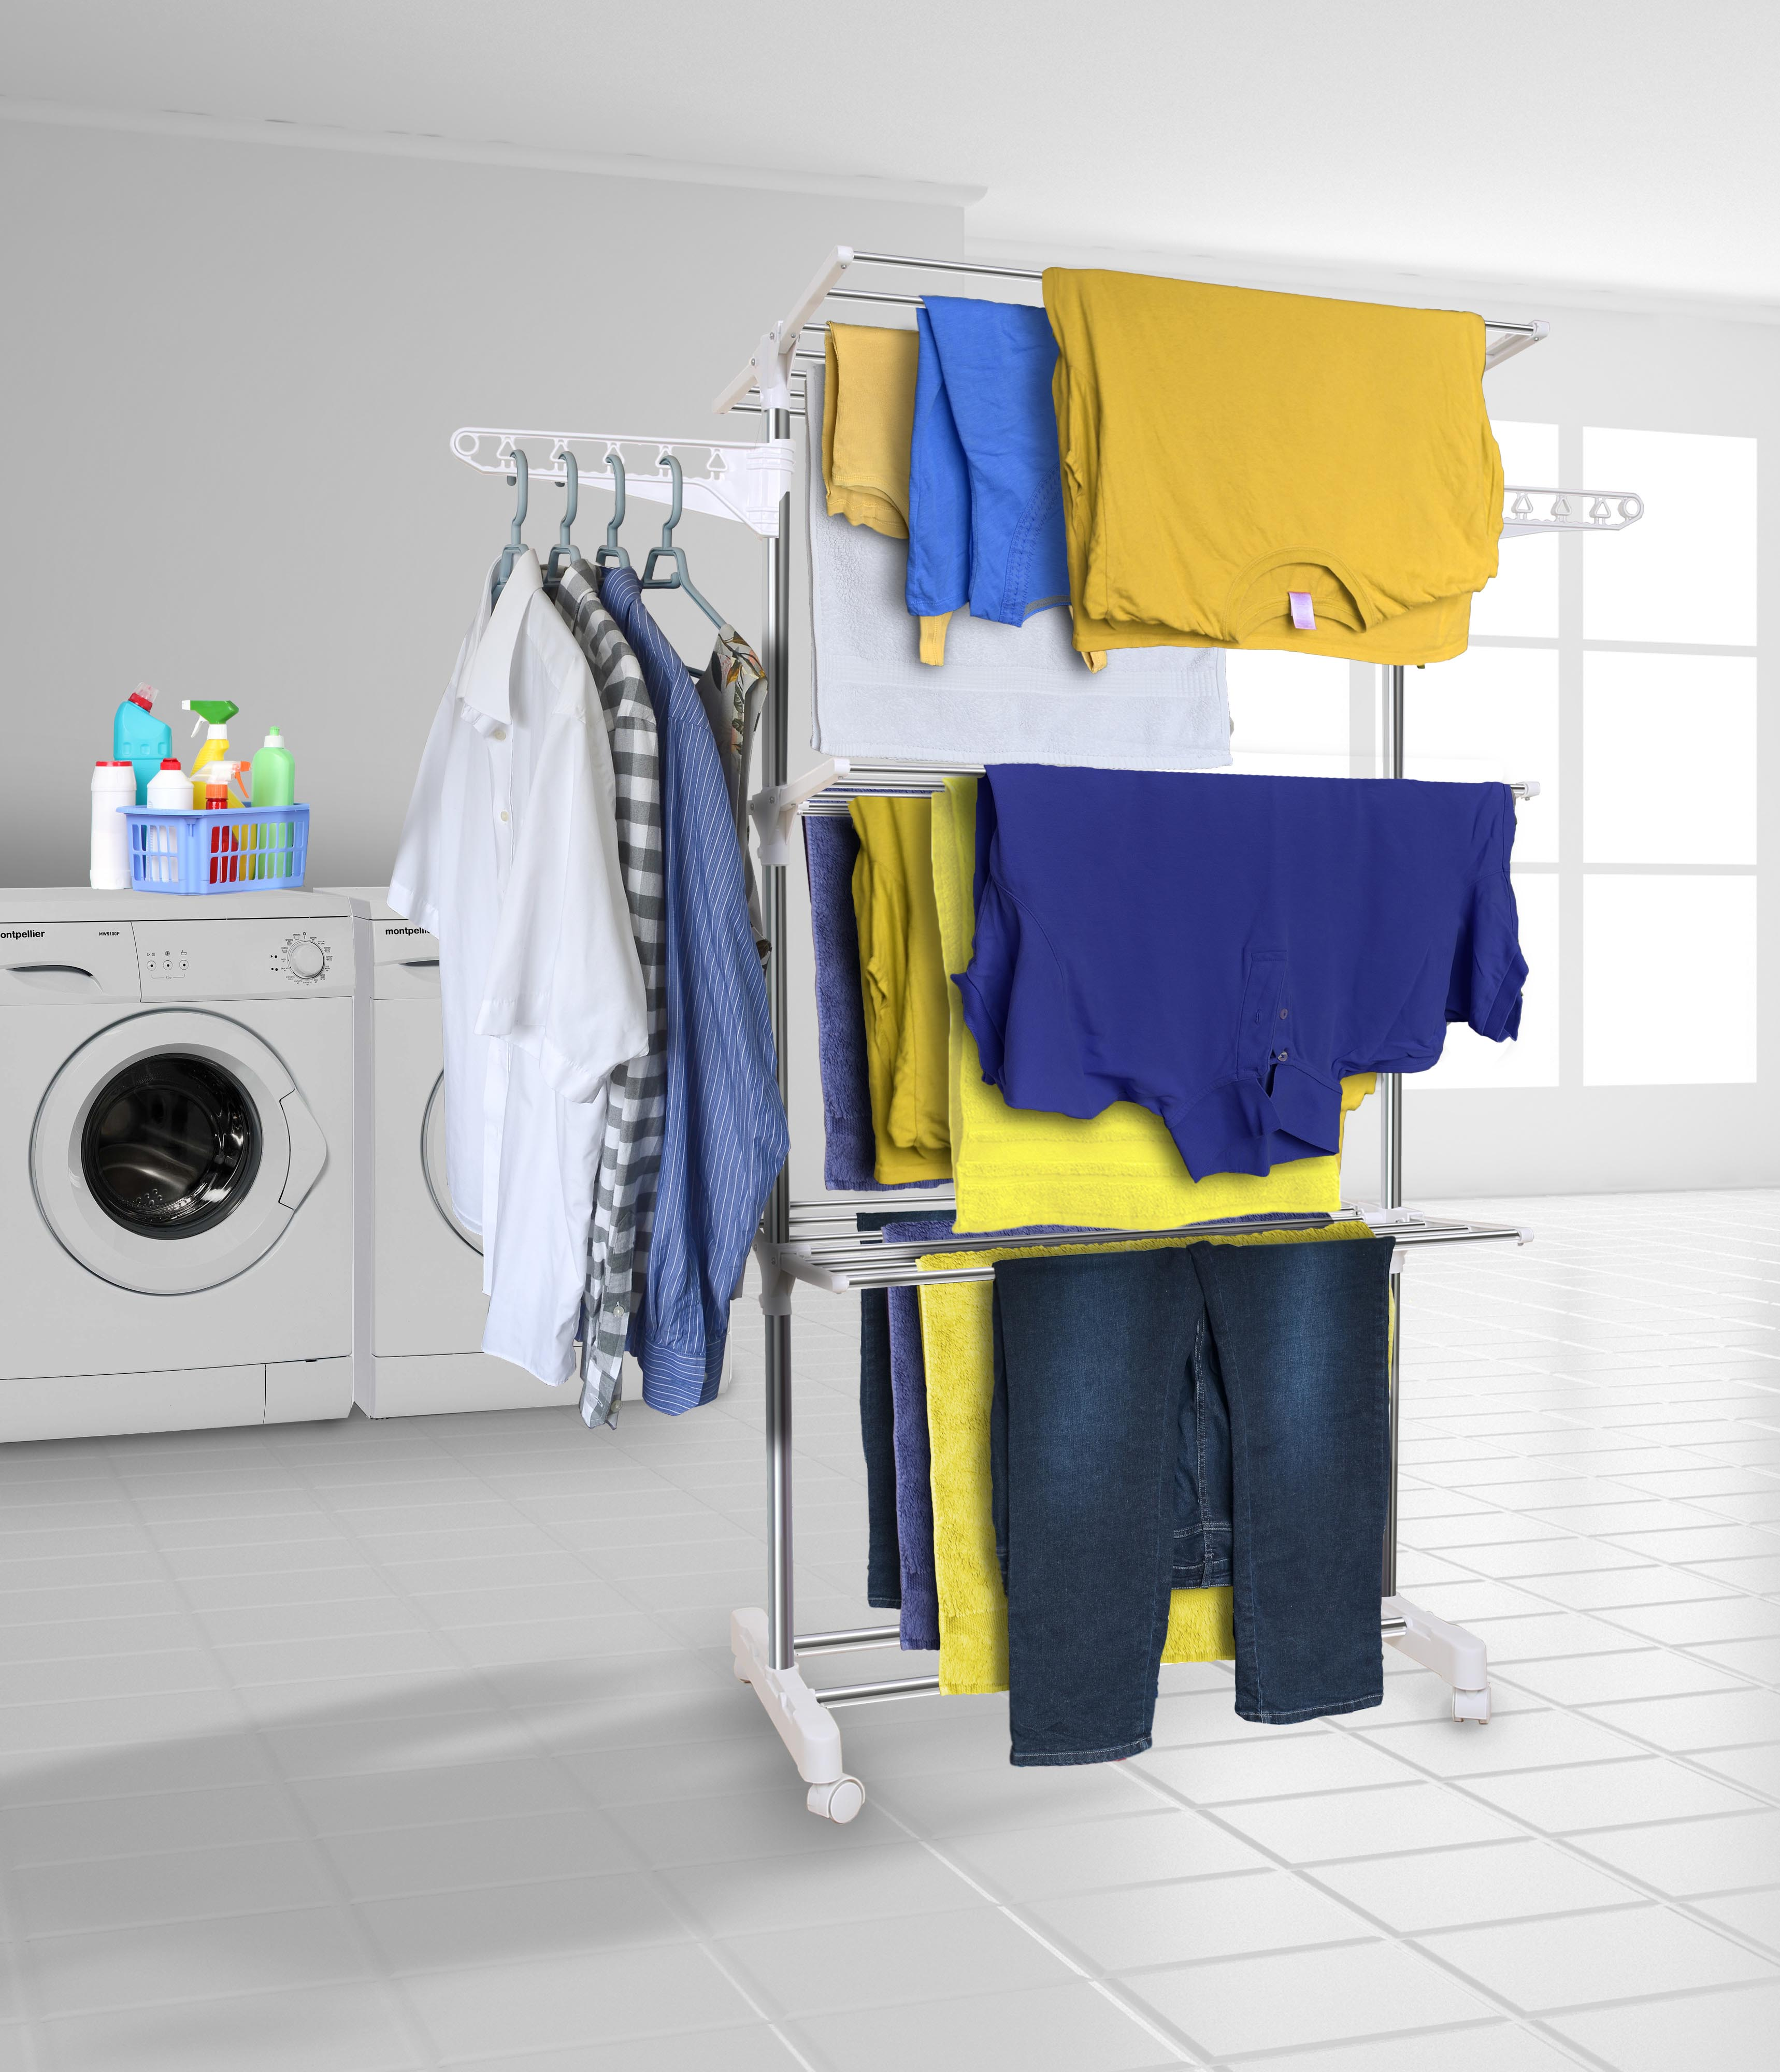 rack folds drying dryer easy large airer storage steel p rail max stainless tier clothes hyfive for flat extra